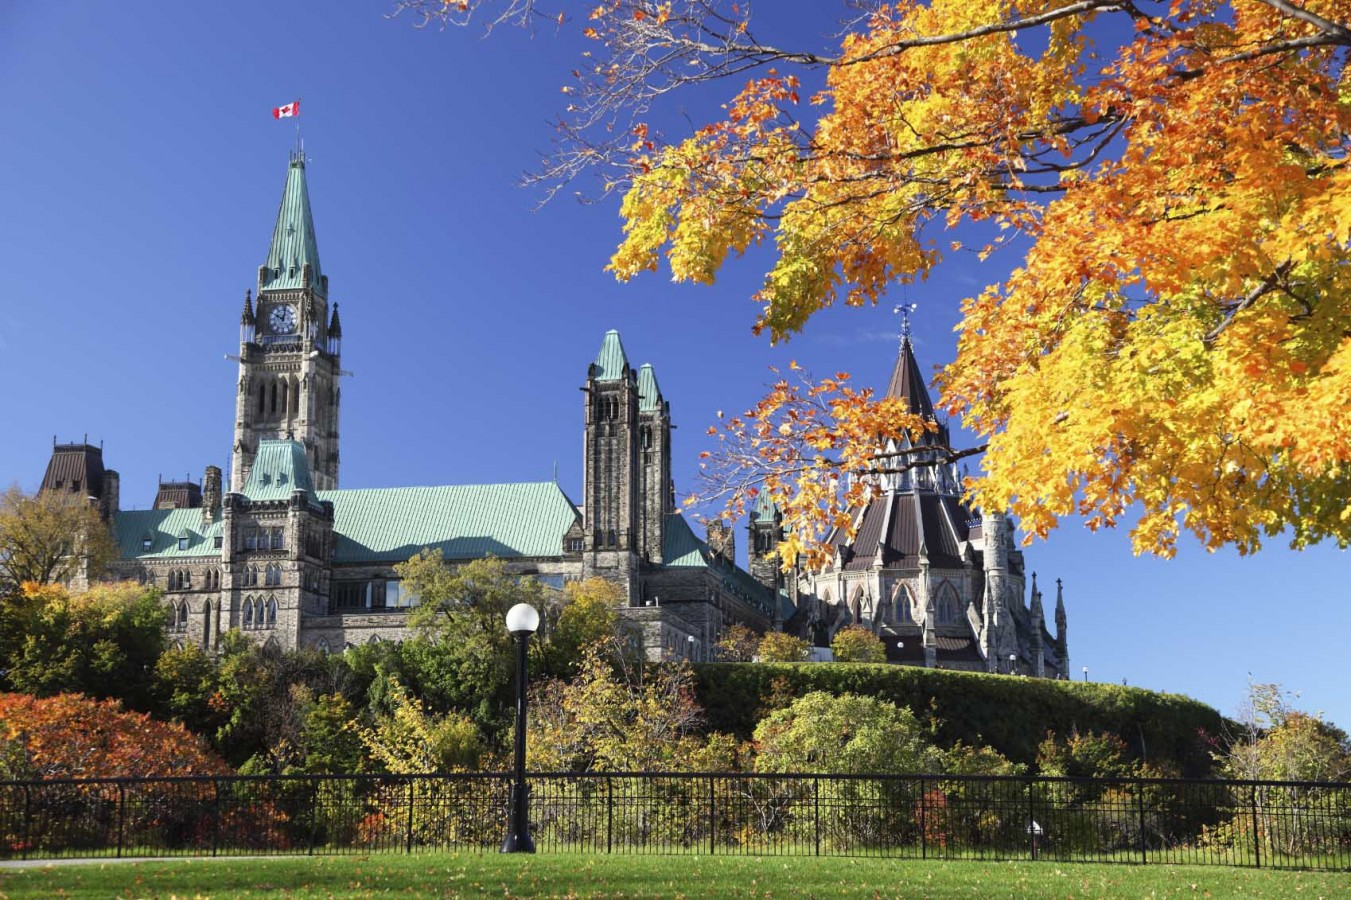 Parliament in Fall Lo Res